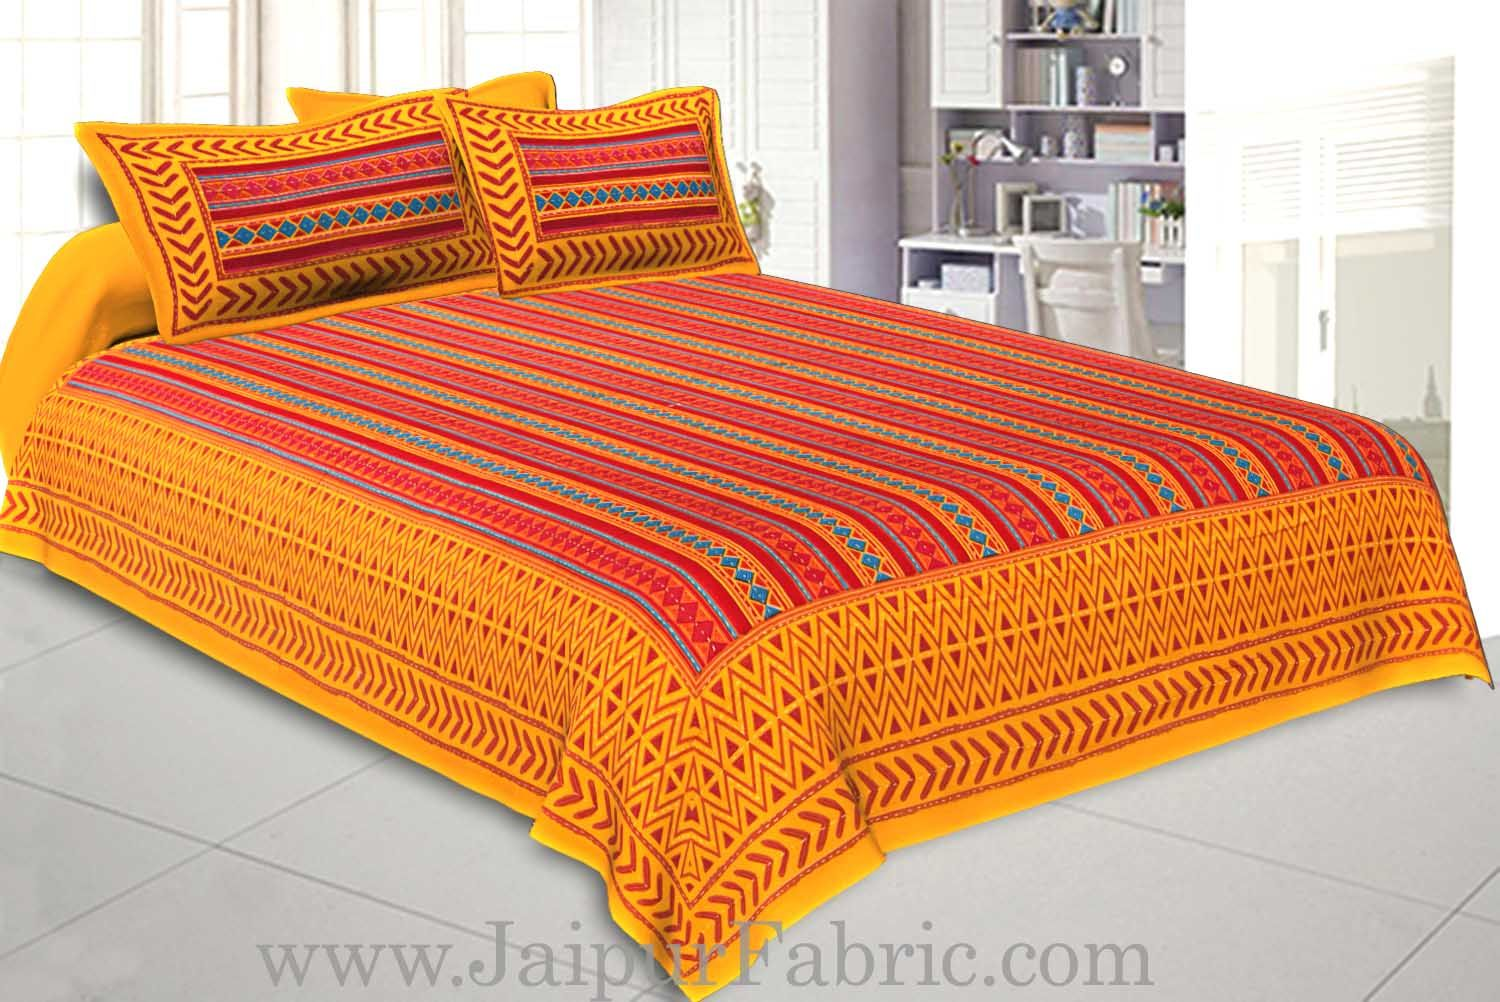 Double bedsheet Katha Work Yellow Border Zig-Zag Print With Two Pillow Cover